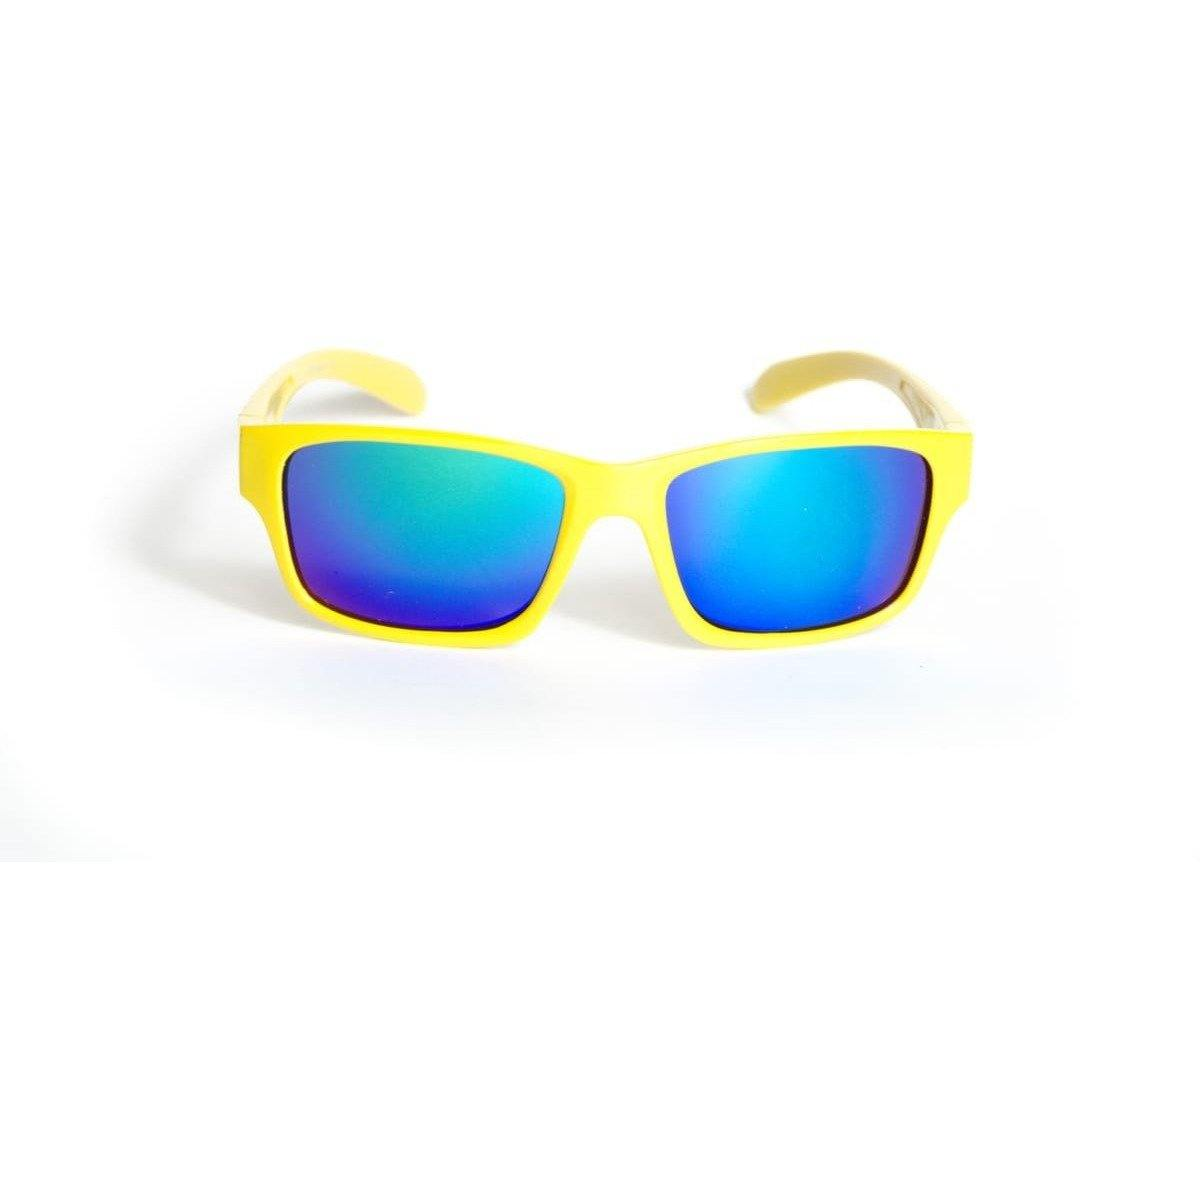 "Sports Sunglasses Designer Sunglasses Model ""Van Man"" Yellow By: The Ever Collection"